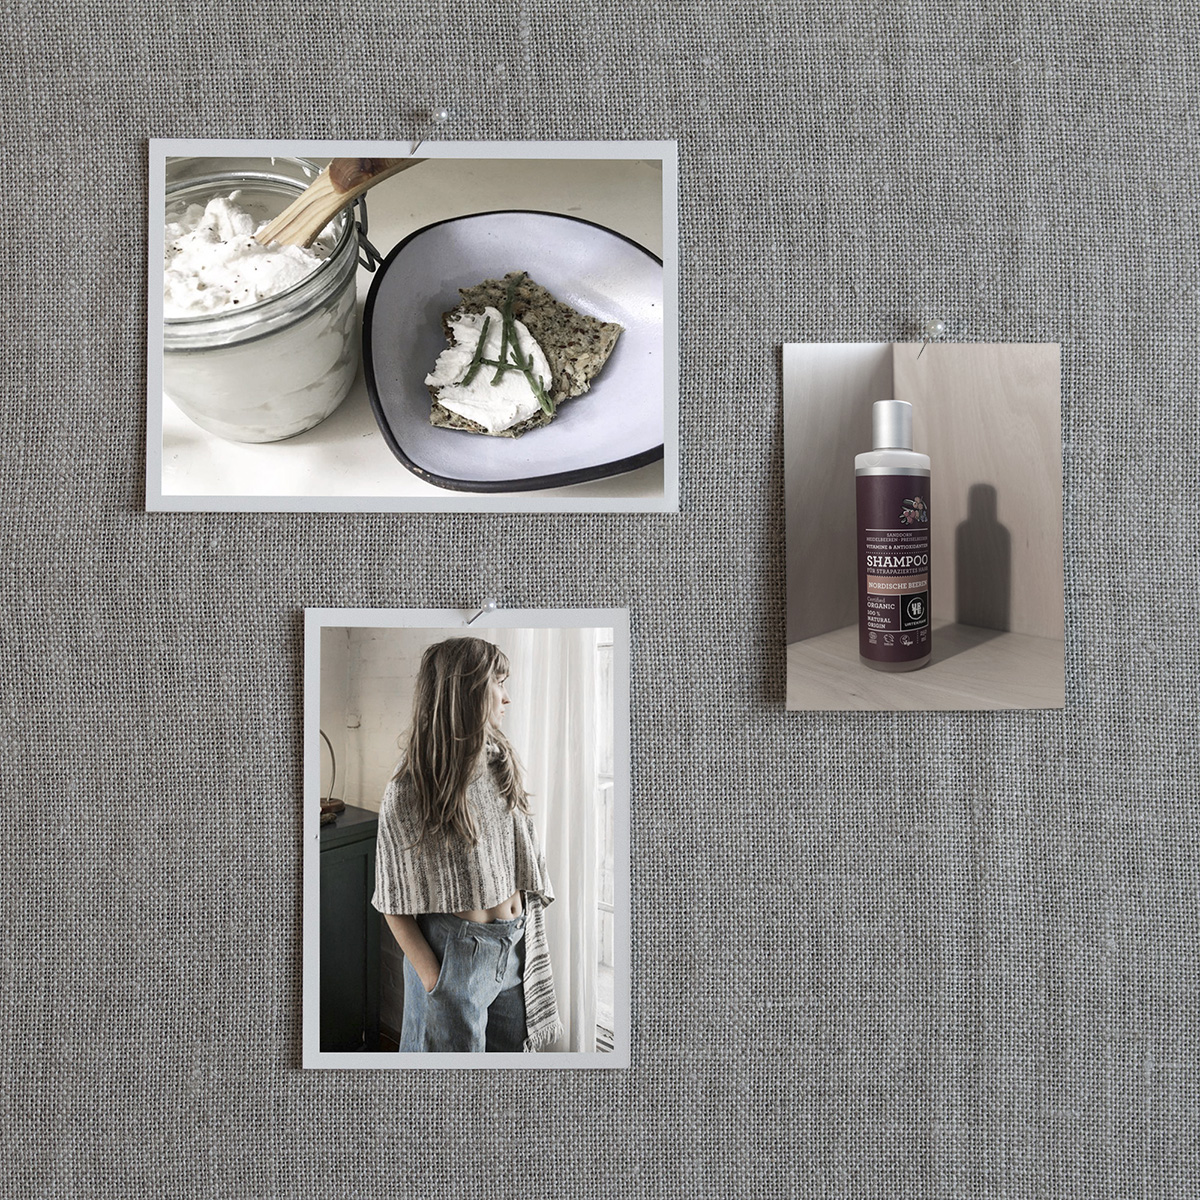 Clockwise from left to right: 18. The Moon Juice Cookbook for $30, 19. Stocking filler: Nordic Berries Shampoo by URTEKRAM, 250 ml for €6.95, 20. Oversize Hand-spun & Hand-woven Lambswool Scarf Nyima by KAL for €159